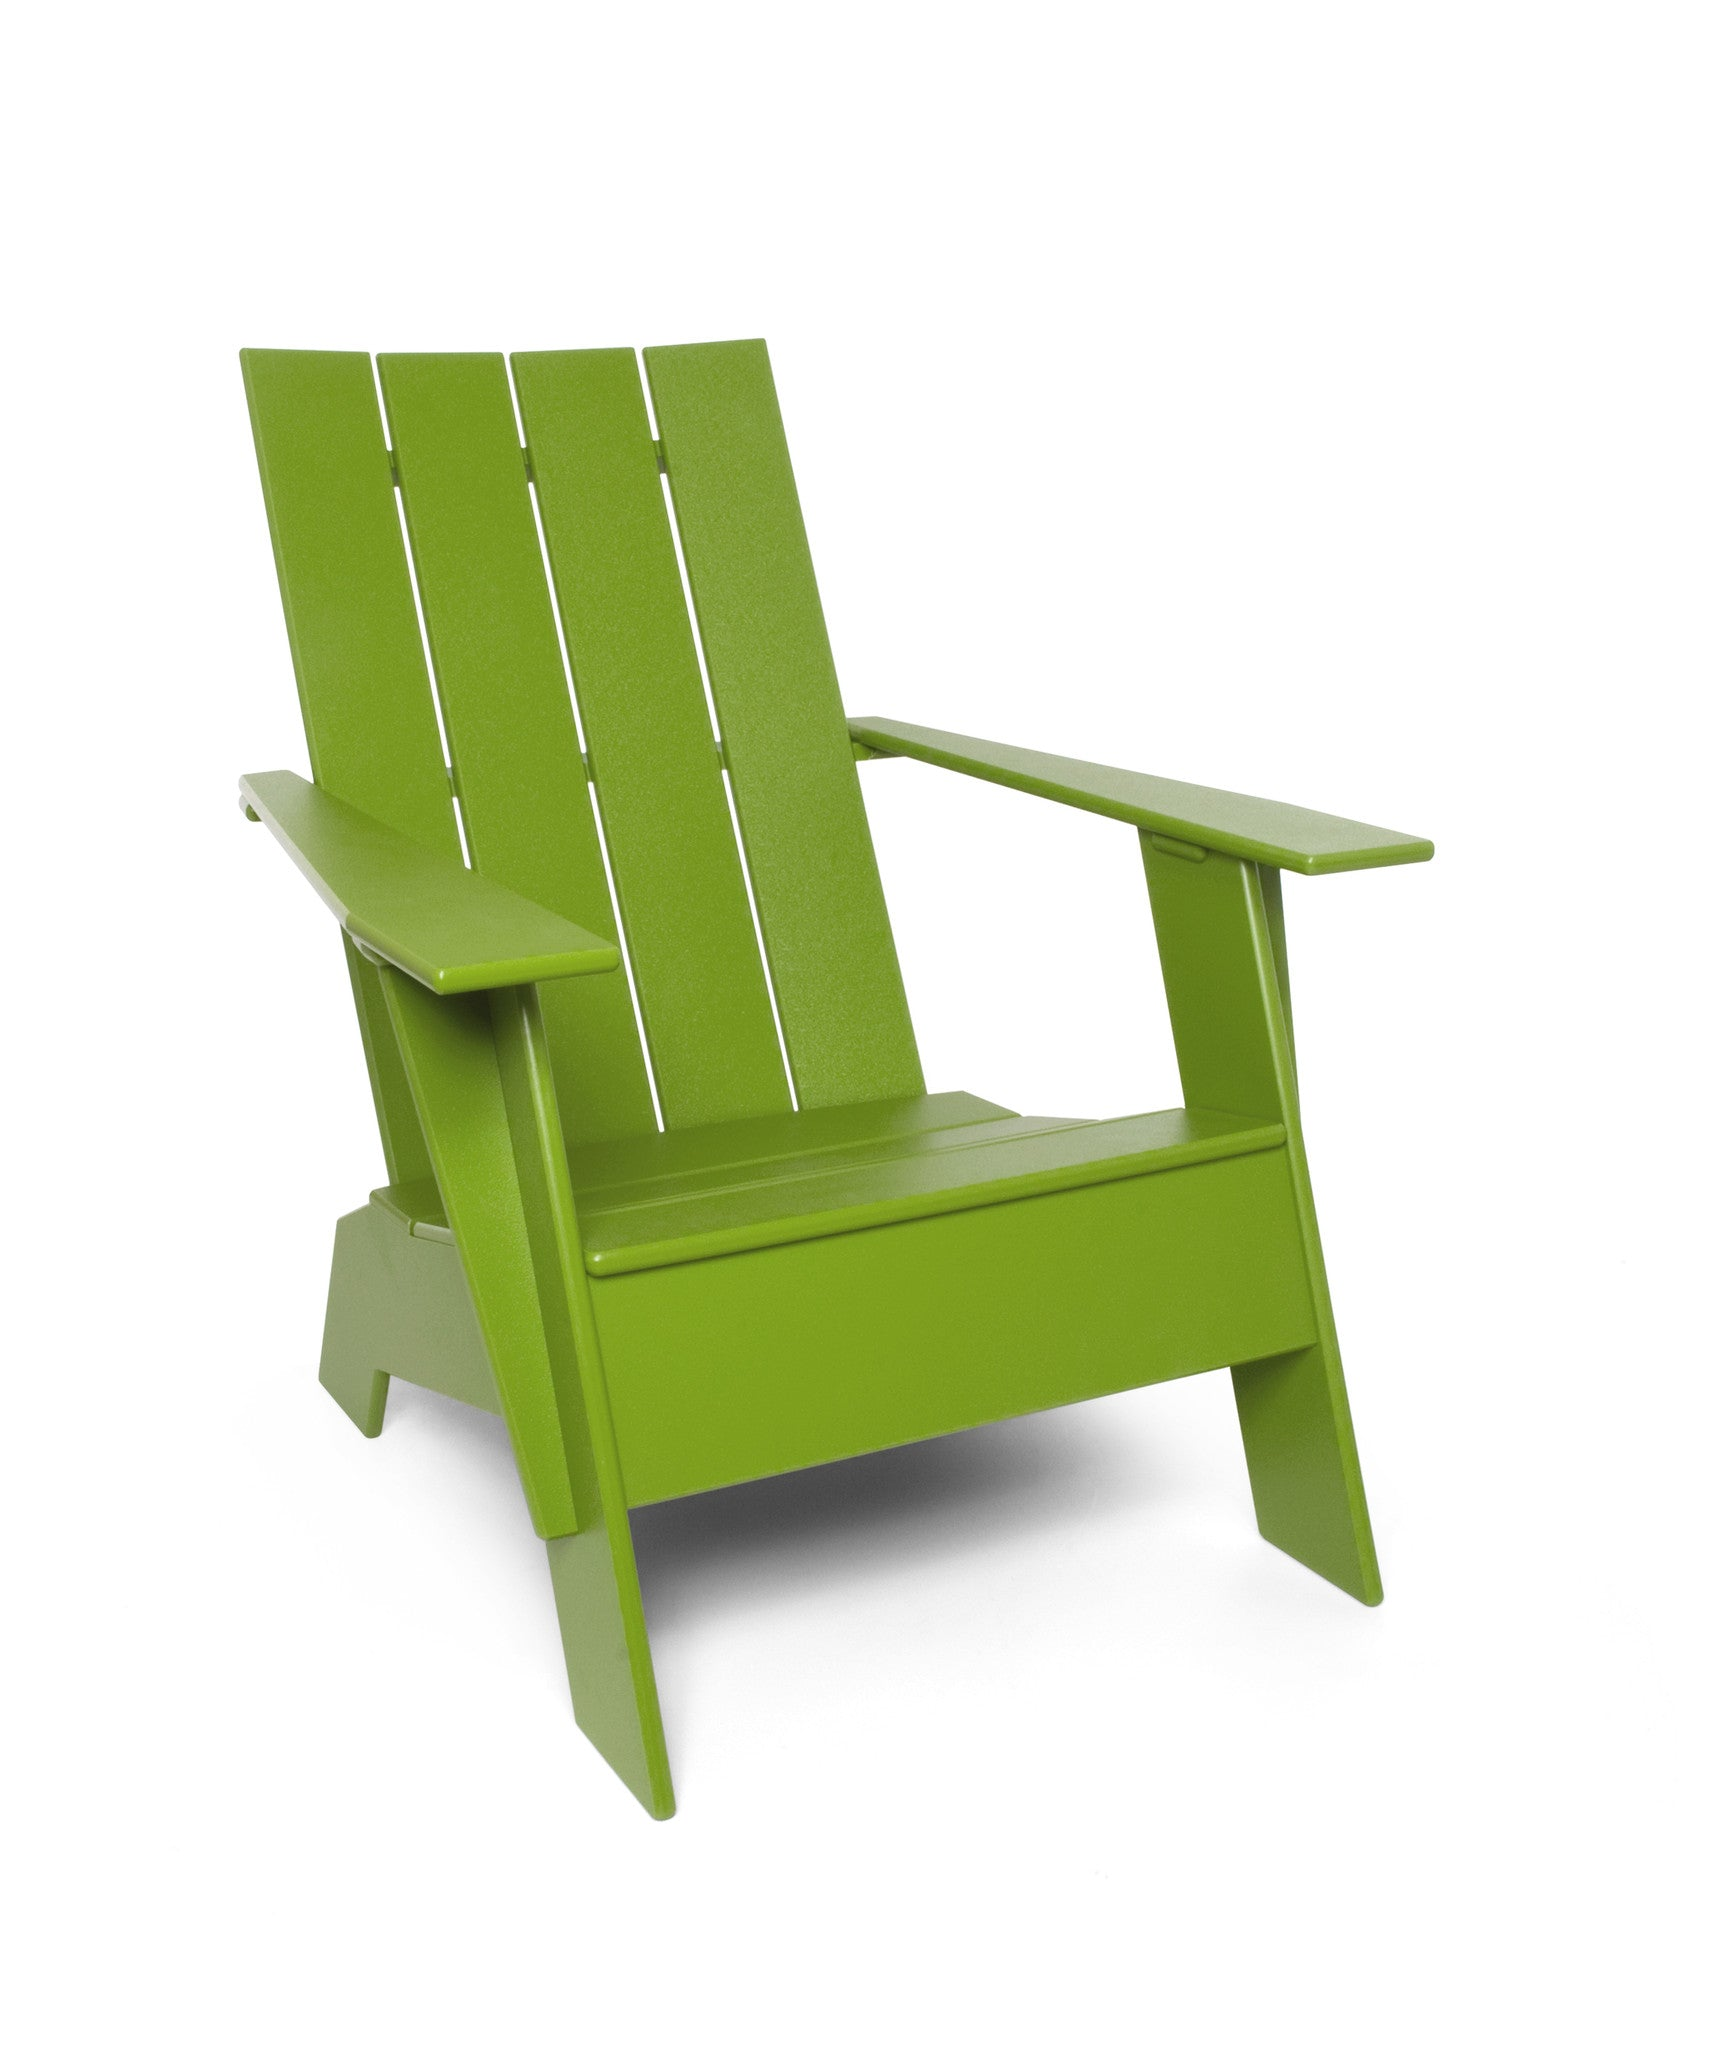 Loll Designs 4 Slat Adirondack Chair (Flat)